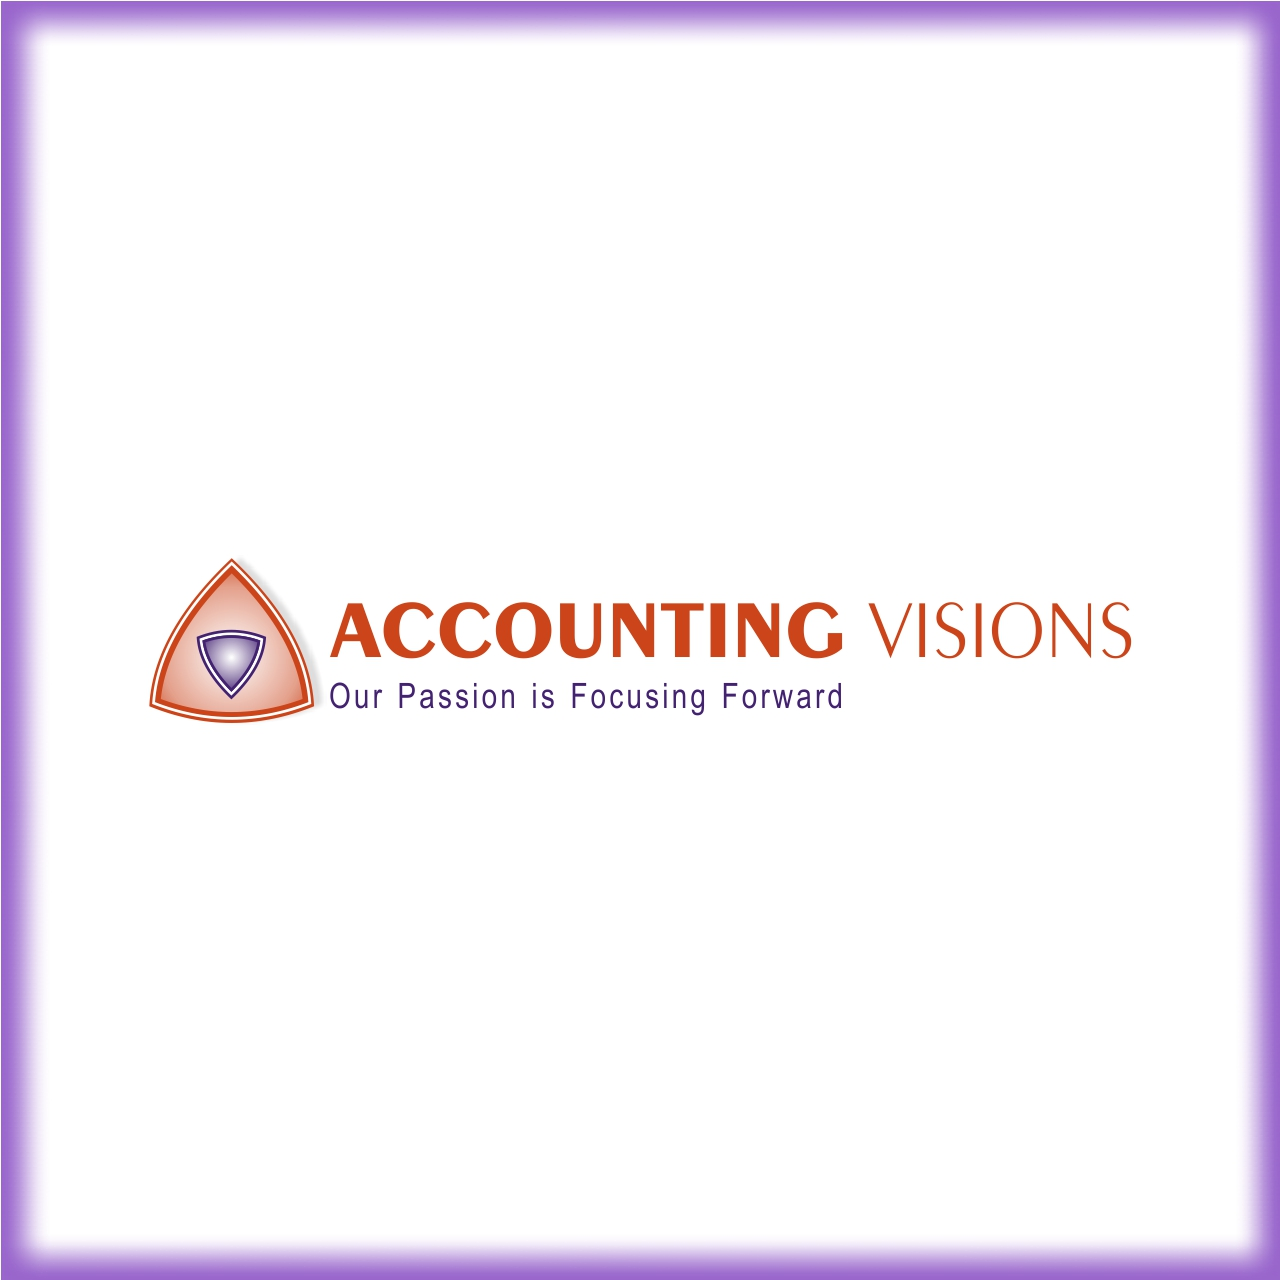 Logo Design by martinz - Entry No. 79 in the Logo Design Contest Accounting Visions.